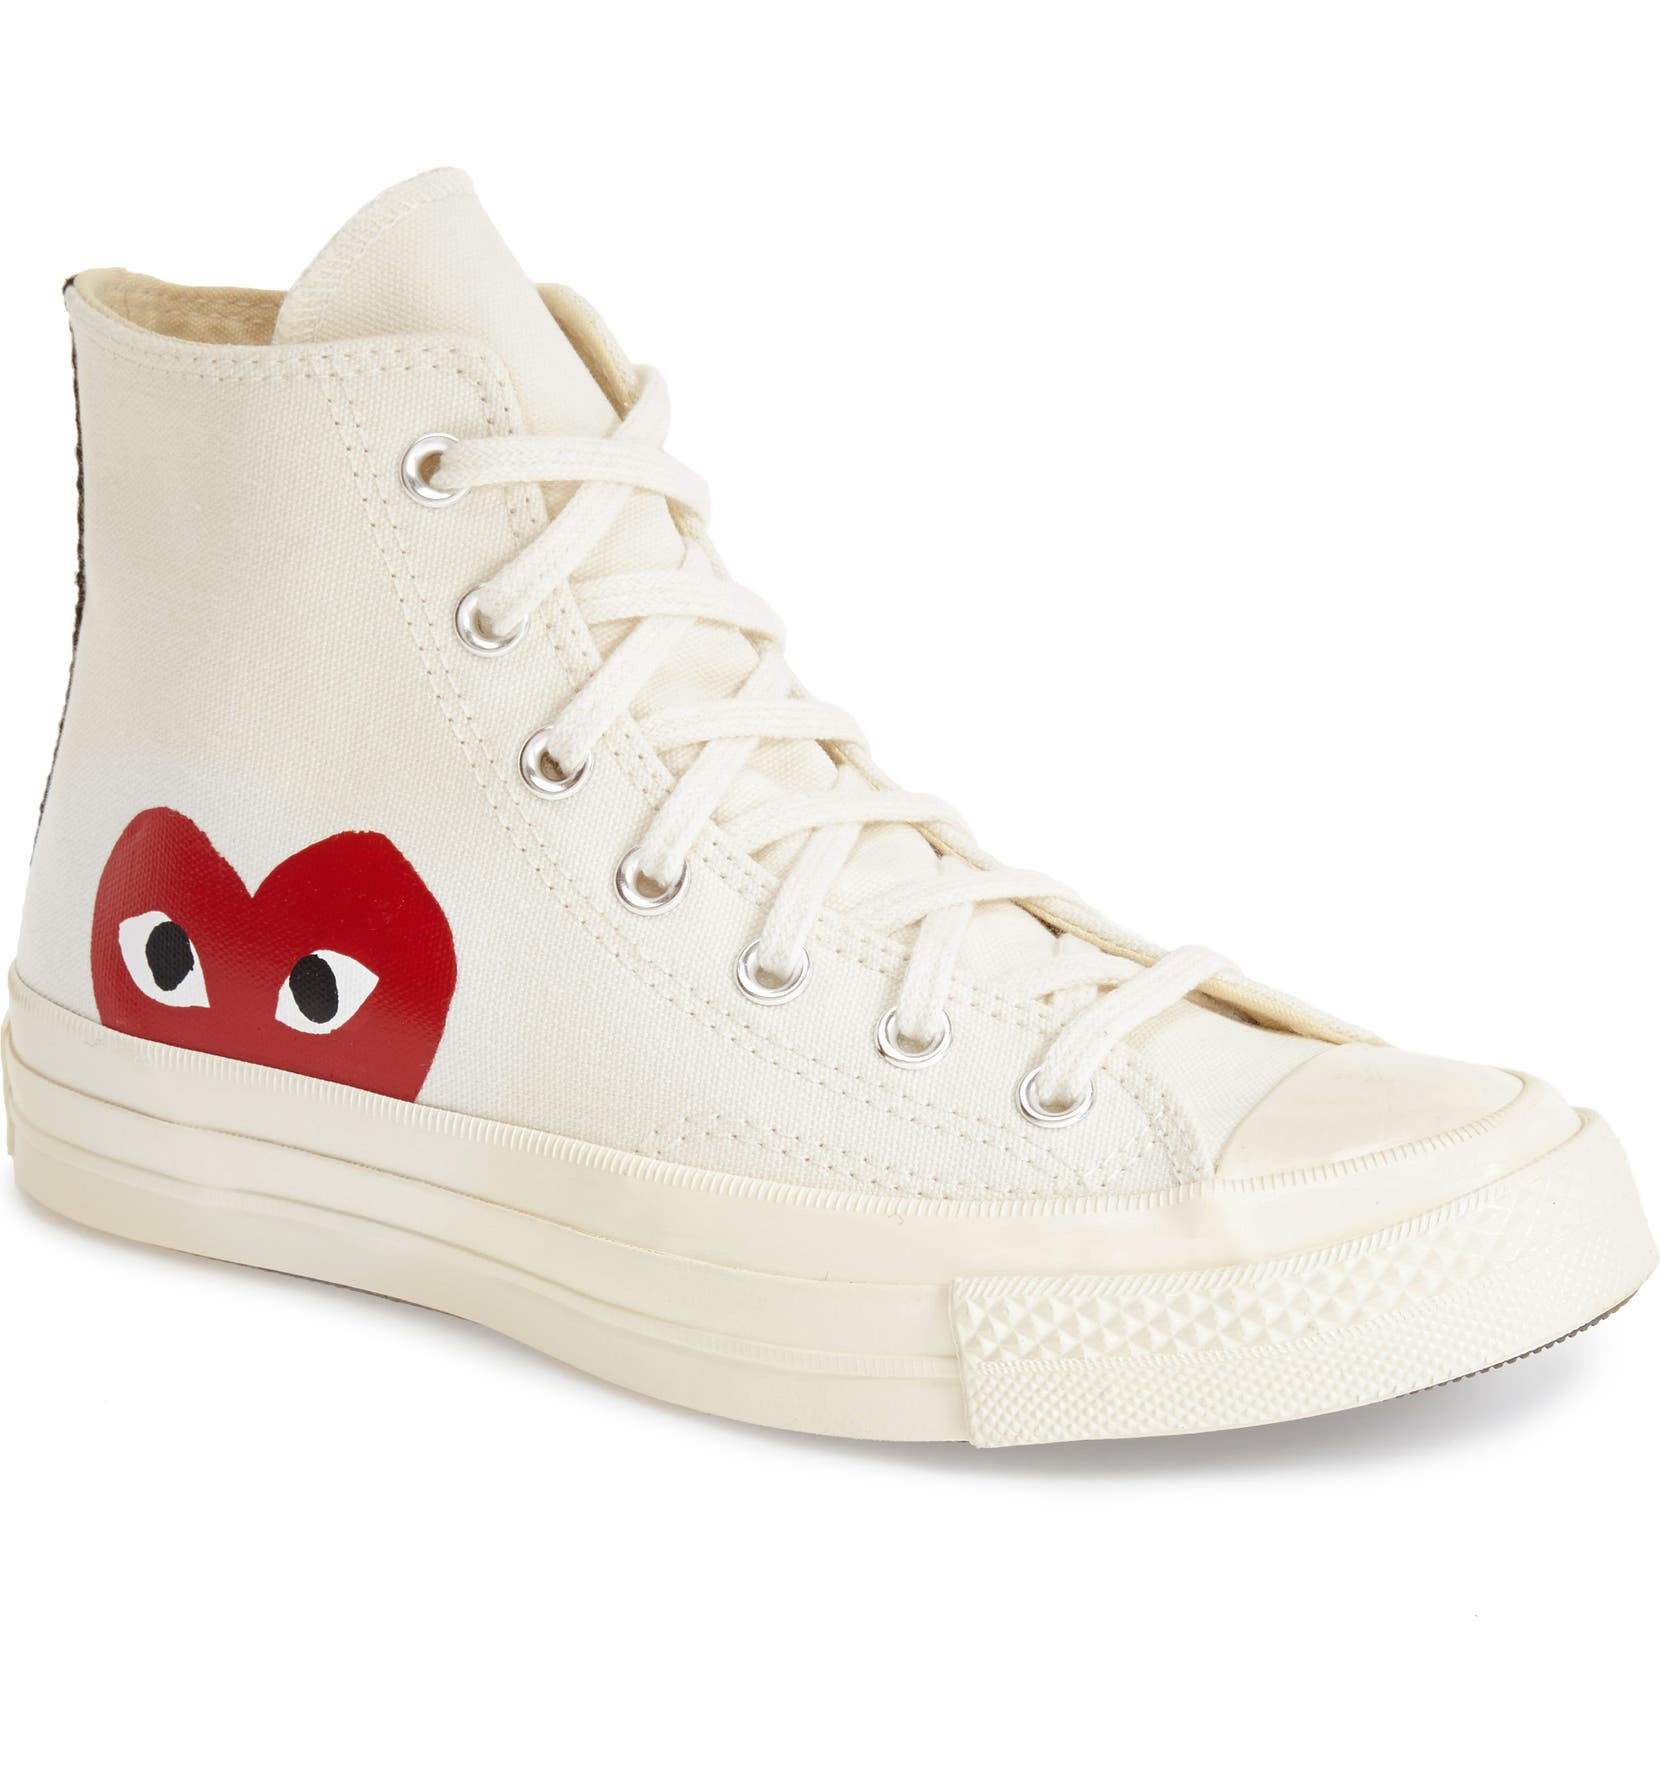 65ad4f02e8e8 Comme des Garçons PLAY x Converse Chuck Taylor® Hidden Heart High Top  Sneaker (Men)